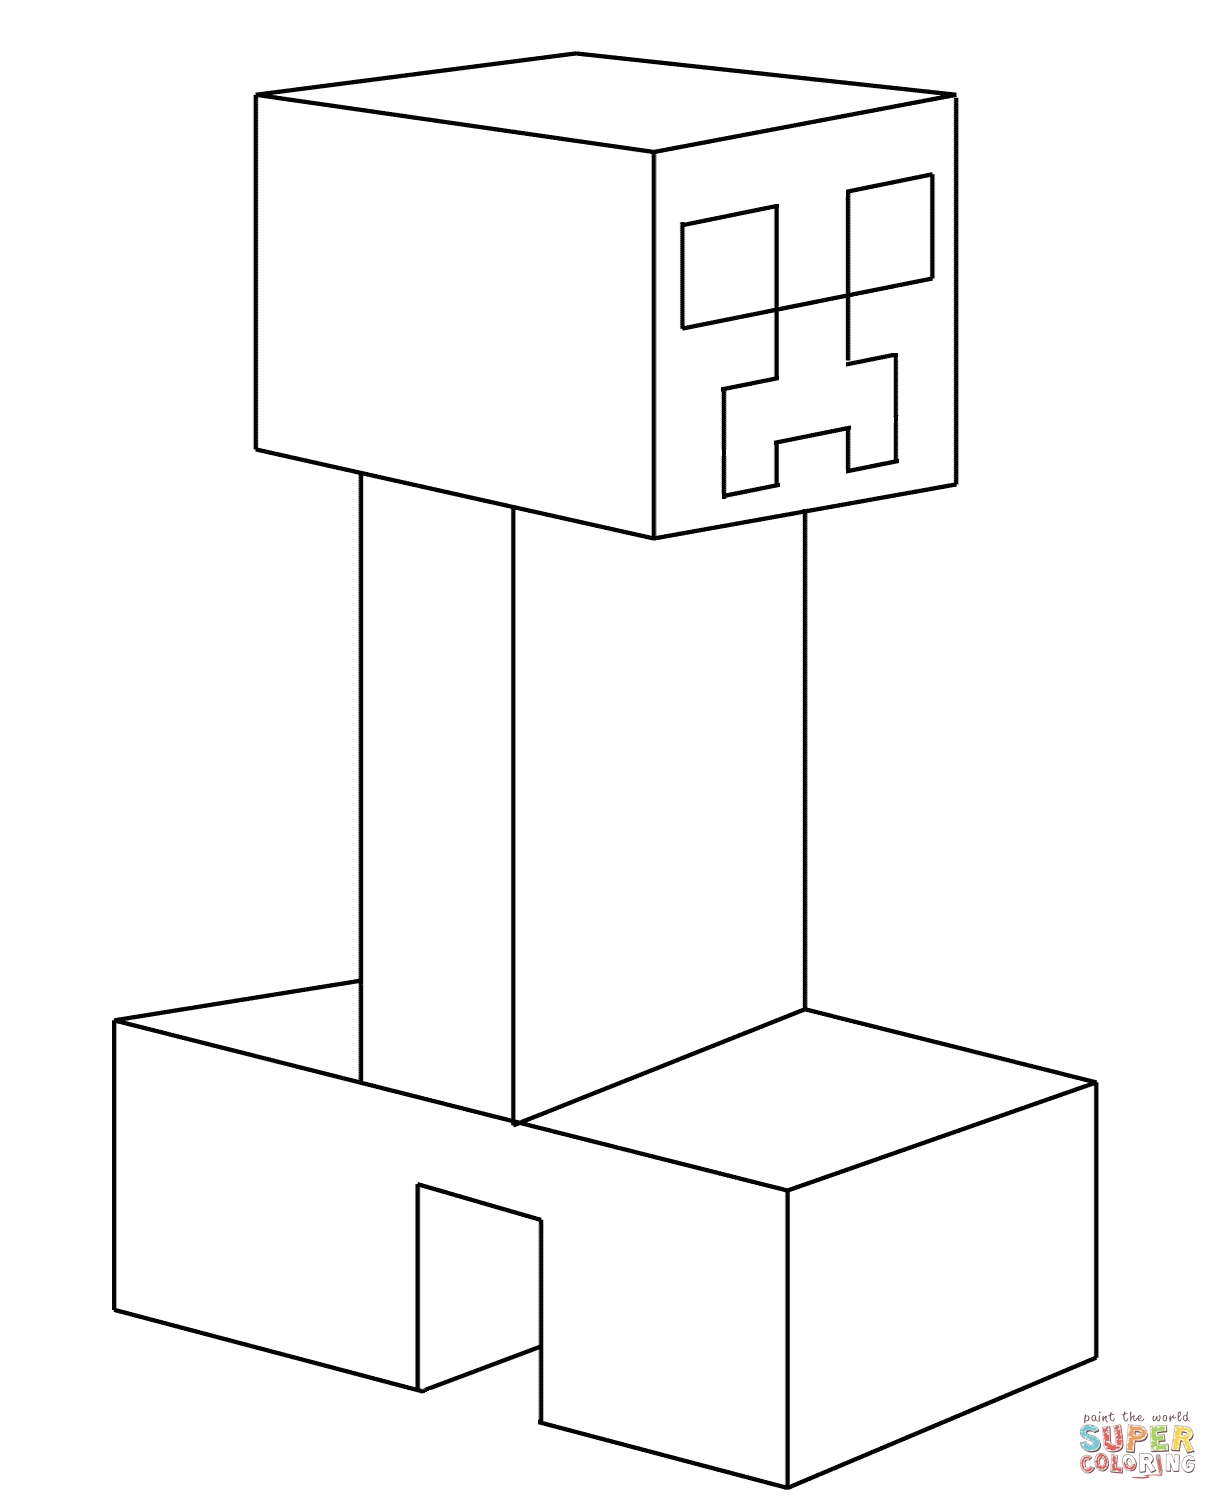 minecraft creeper coloring page - click the minecraft ocelot coloring